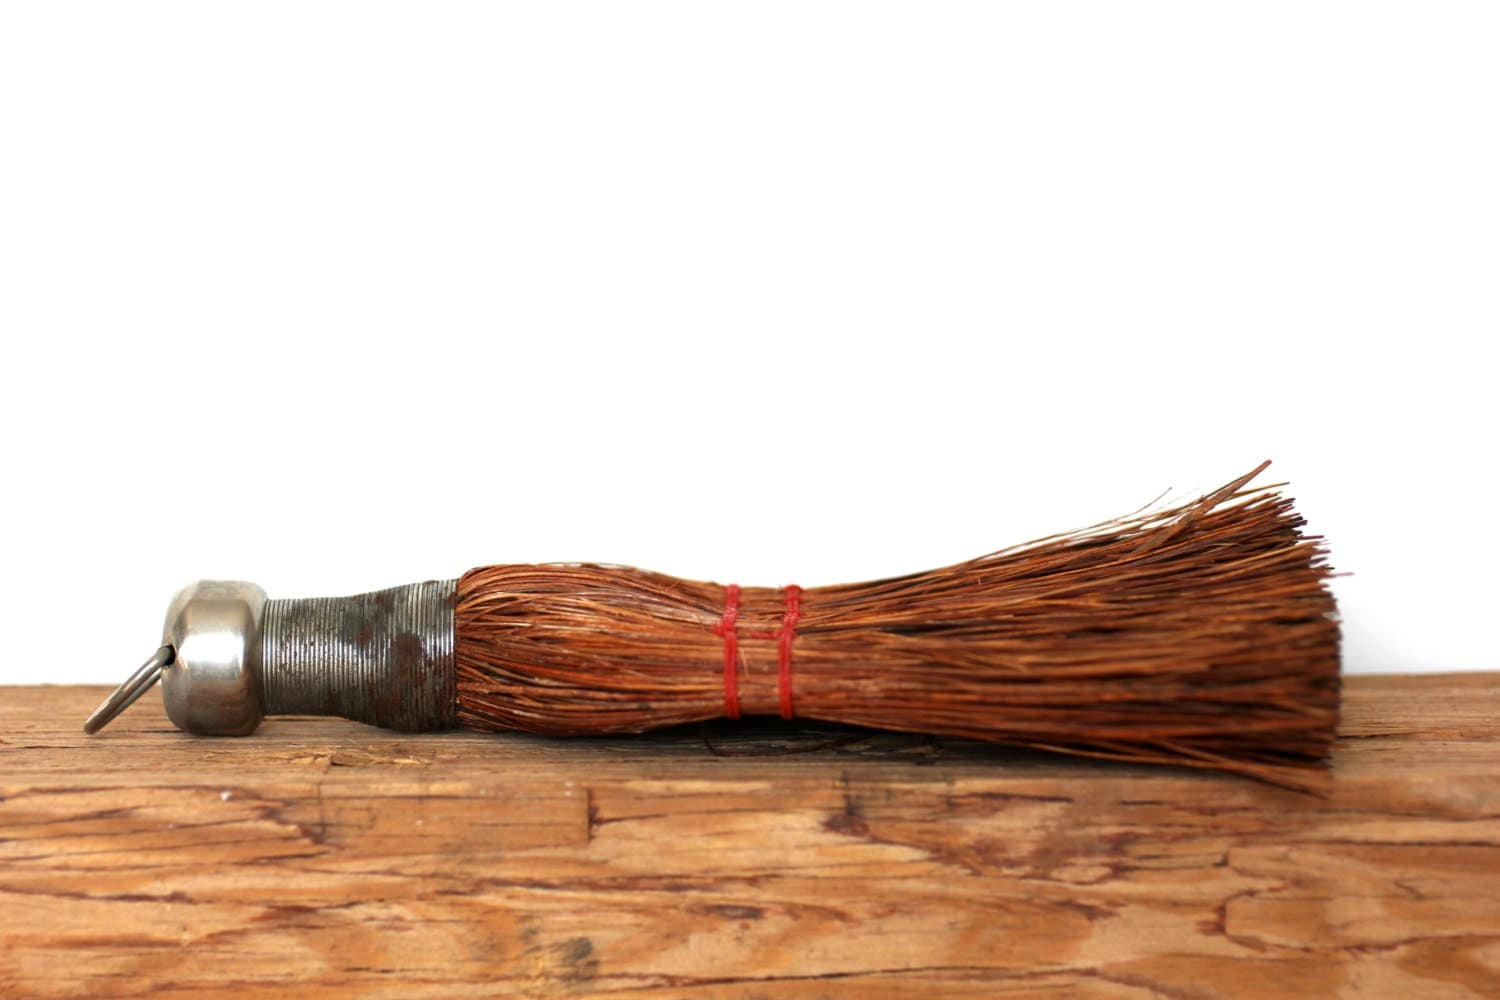 Spring Cleaning - Vintage Whisk Broom - Broom - Brown - Poppy Red - Red - Clean - Chores - Rustic - Bristles - attentionvintage